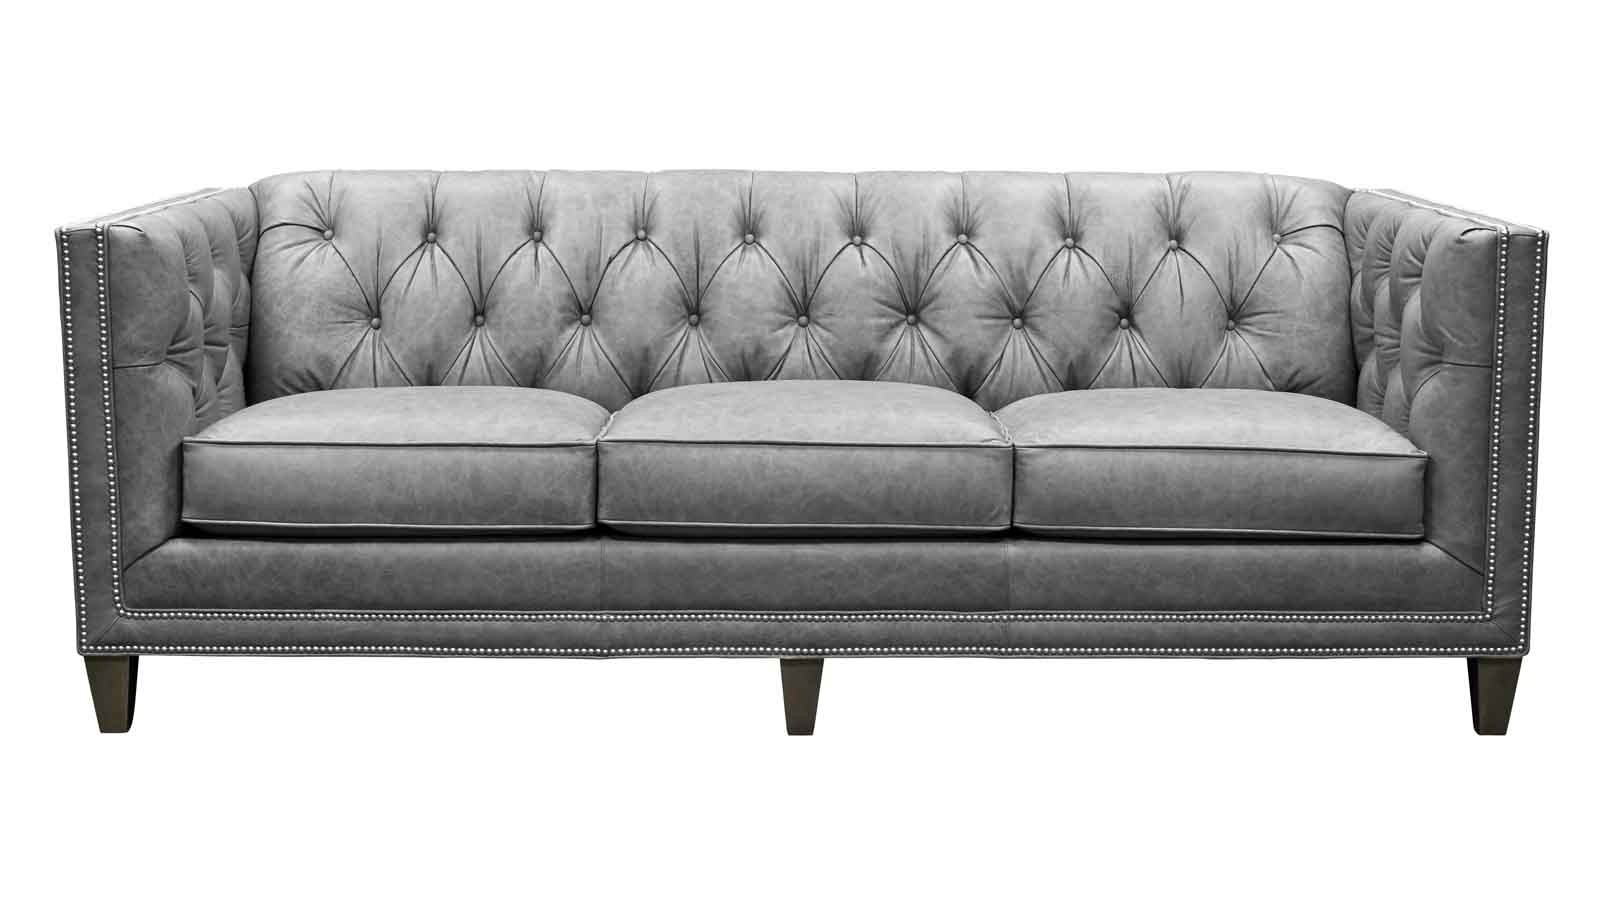 Grey Leather Sofa Restoration Hardware Sleeper Sofas For Sale Online With Caressa Leather Dove Grey Sofa Chairs (Image 13 of 20)